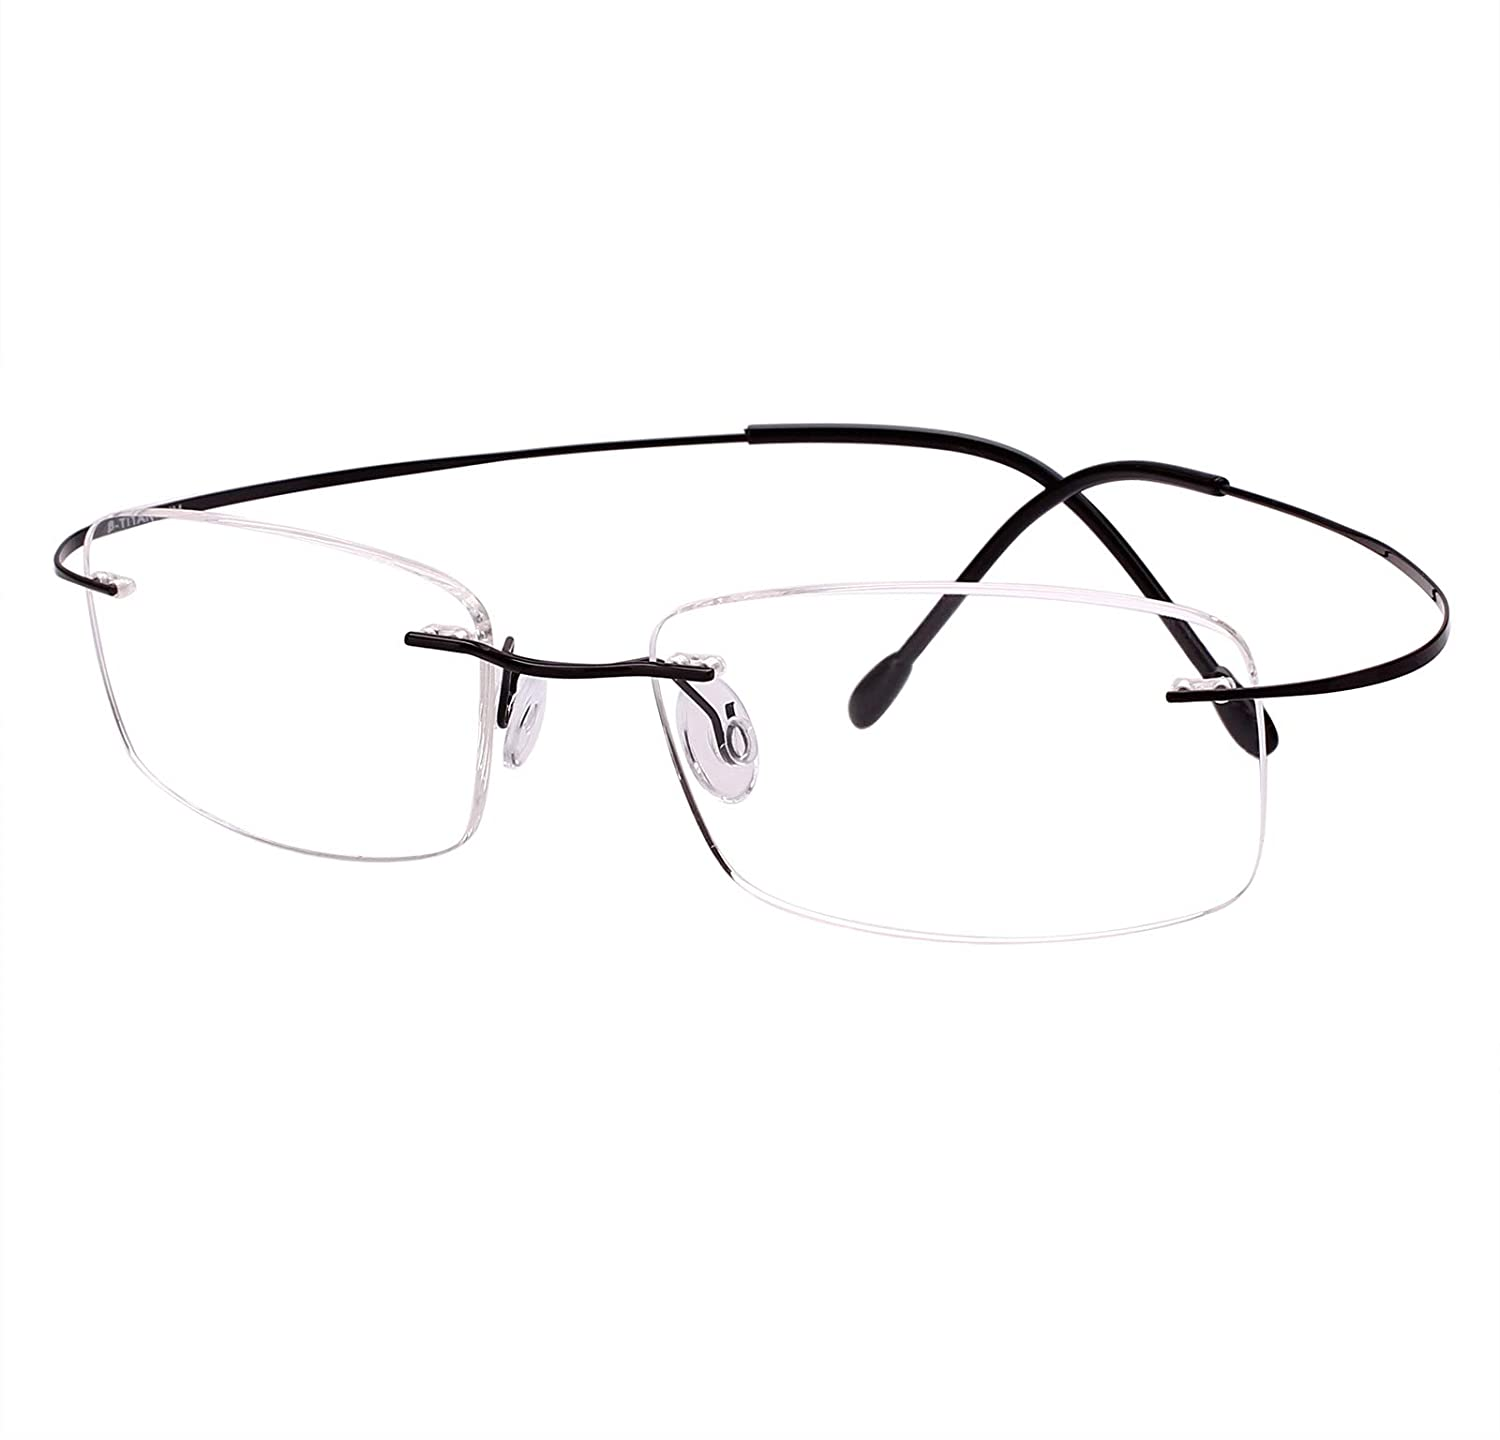 Agstum Pure Titanium Rimless Frame Prescription Hingeless Eyeglasses Rx 55) AG102